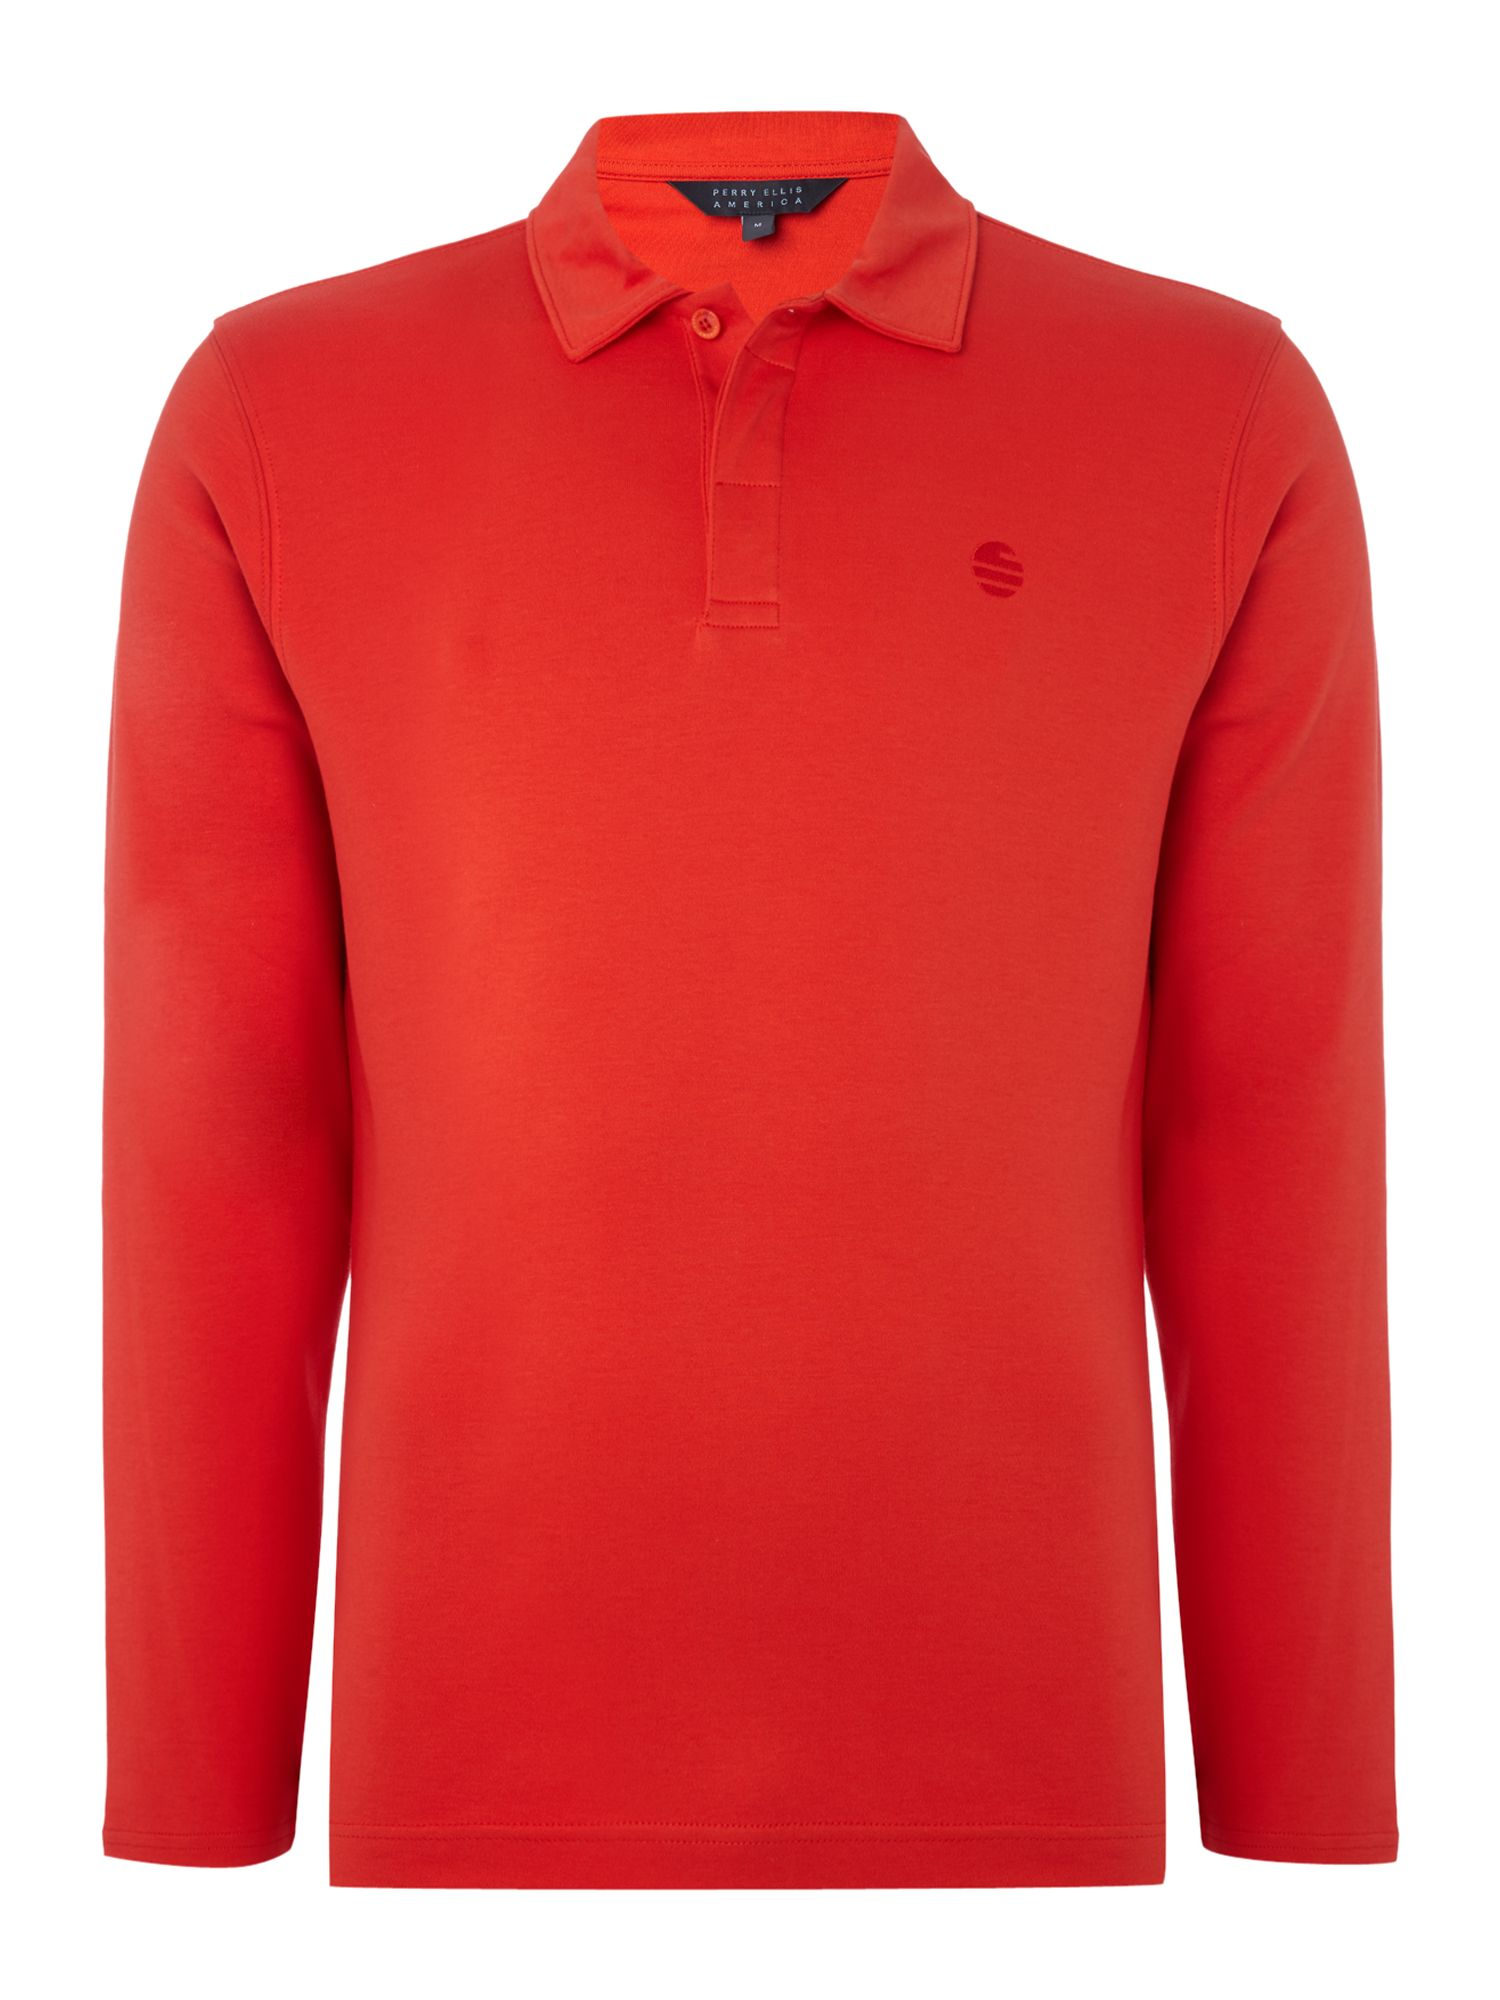 Men's Perry Ellis America Long Sleeve Archive Polo Shirt, Red